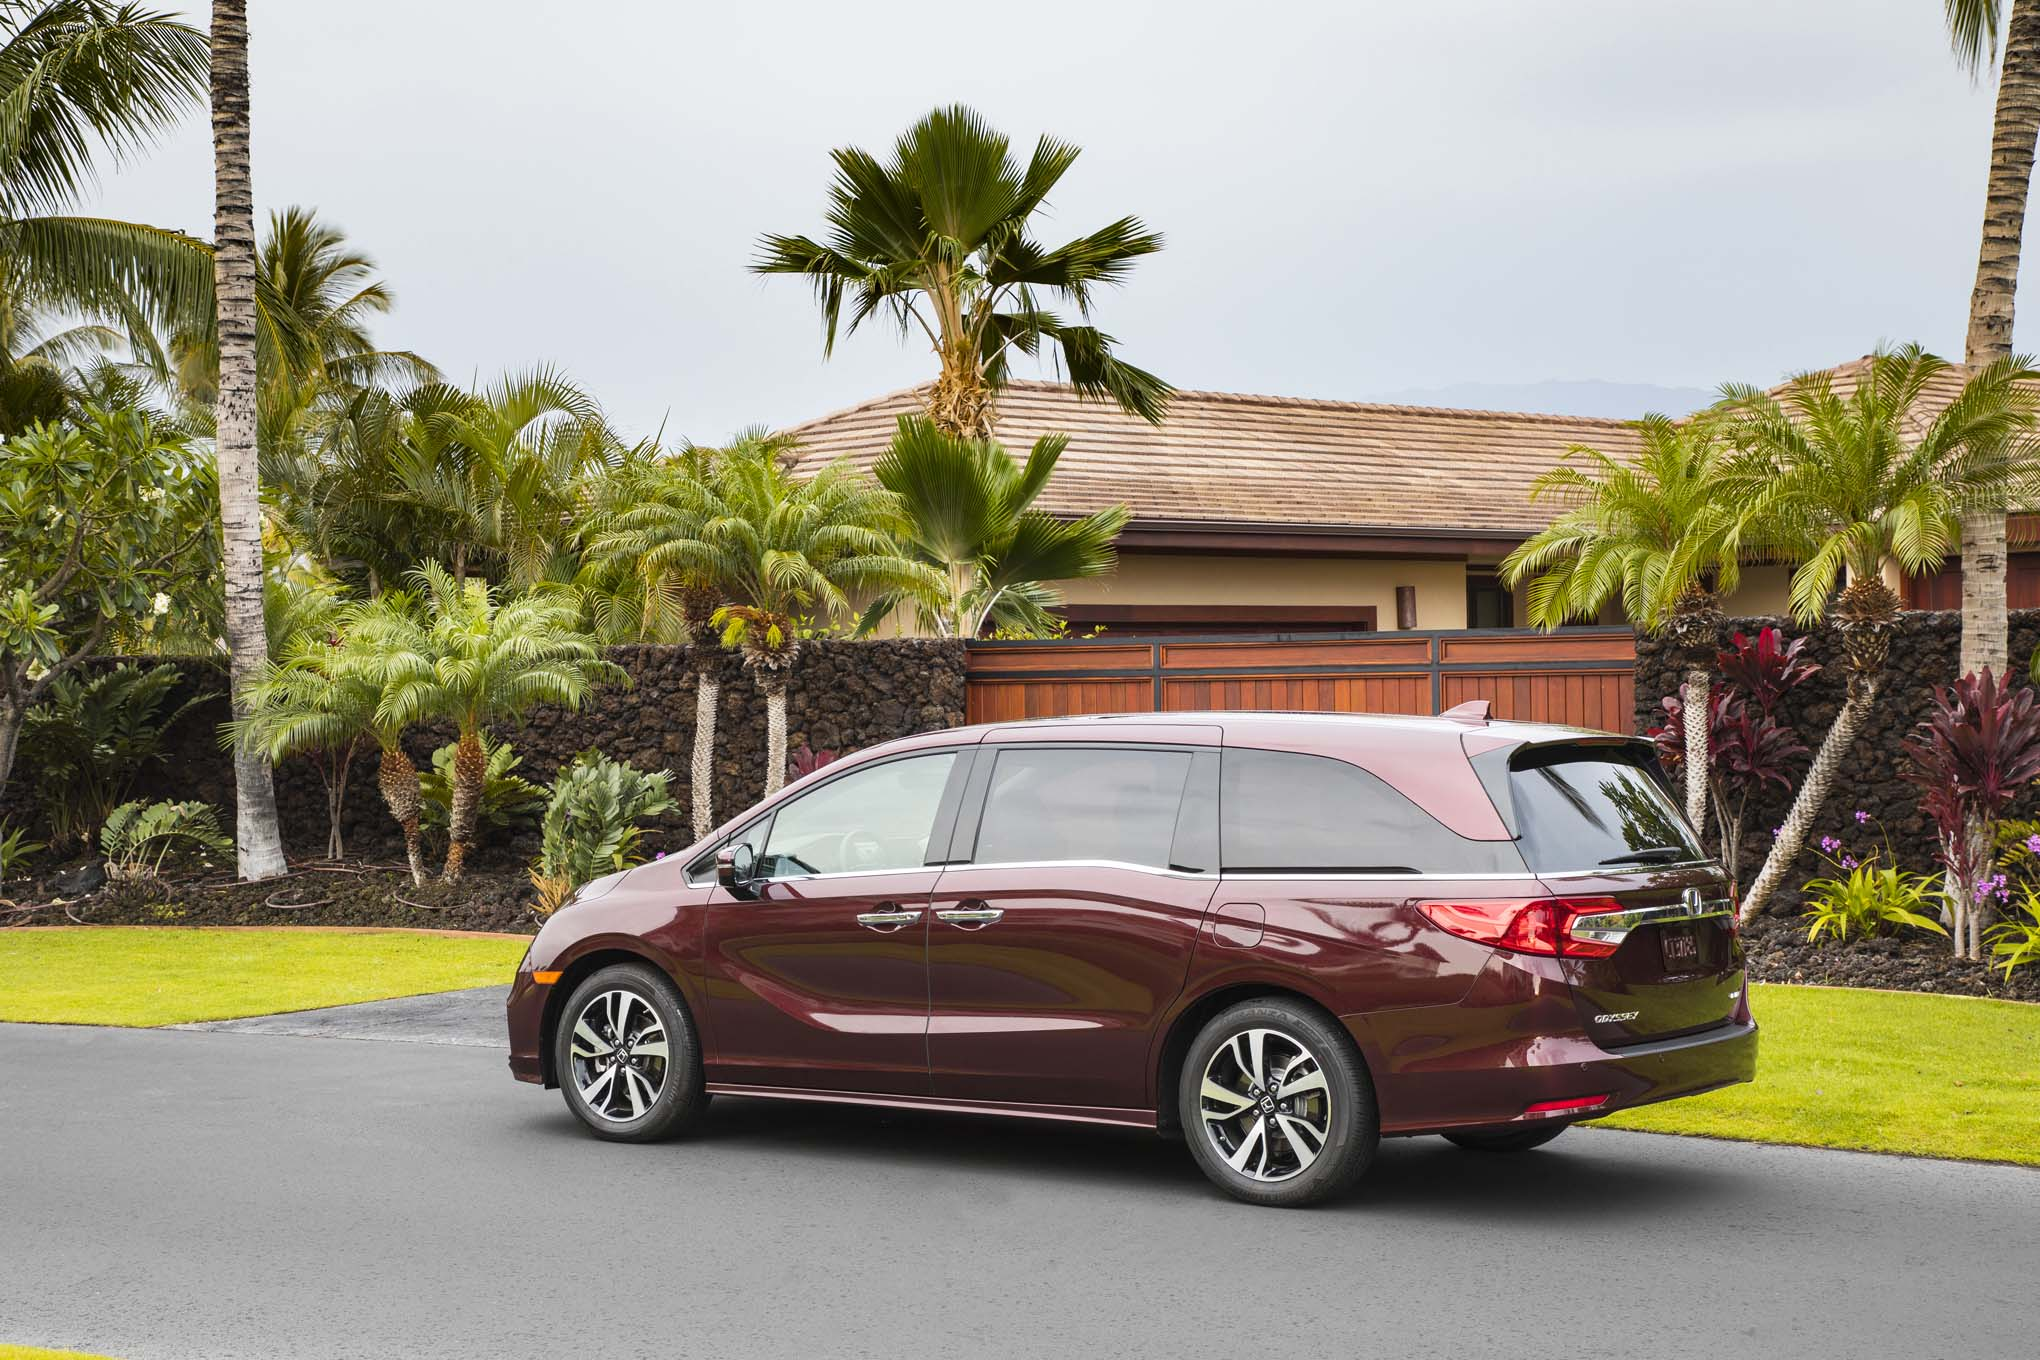 2018 Honda Odyssey Rear Three Quarters